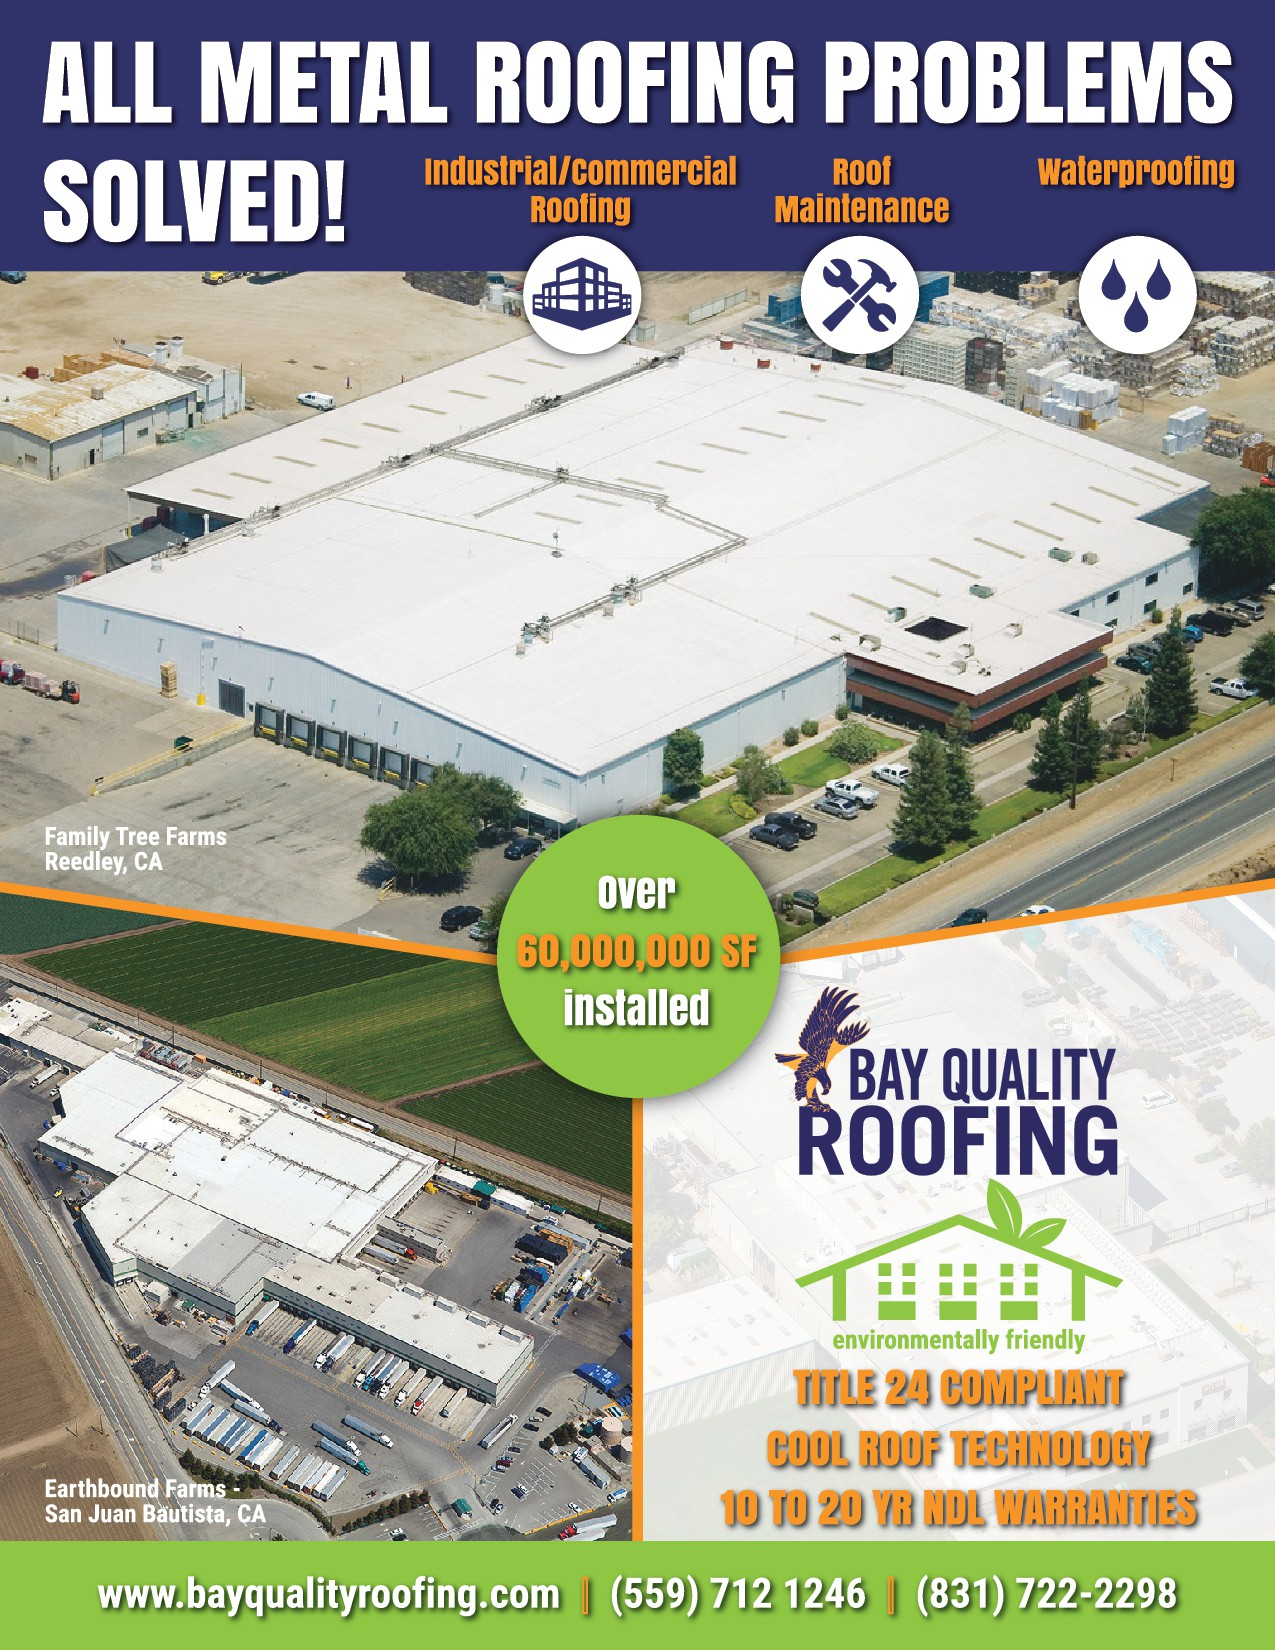 Create a call to action mailer for a environmentally conscious roofing company